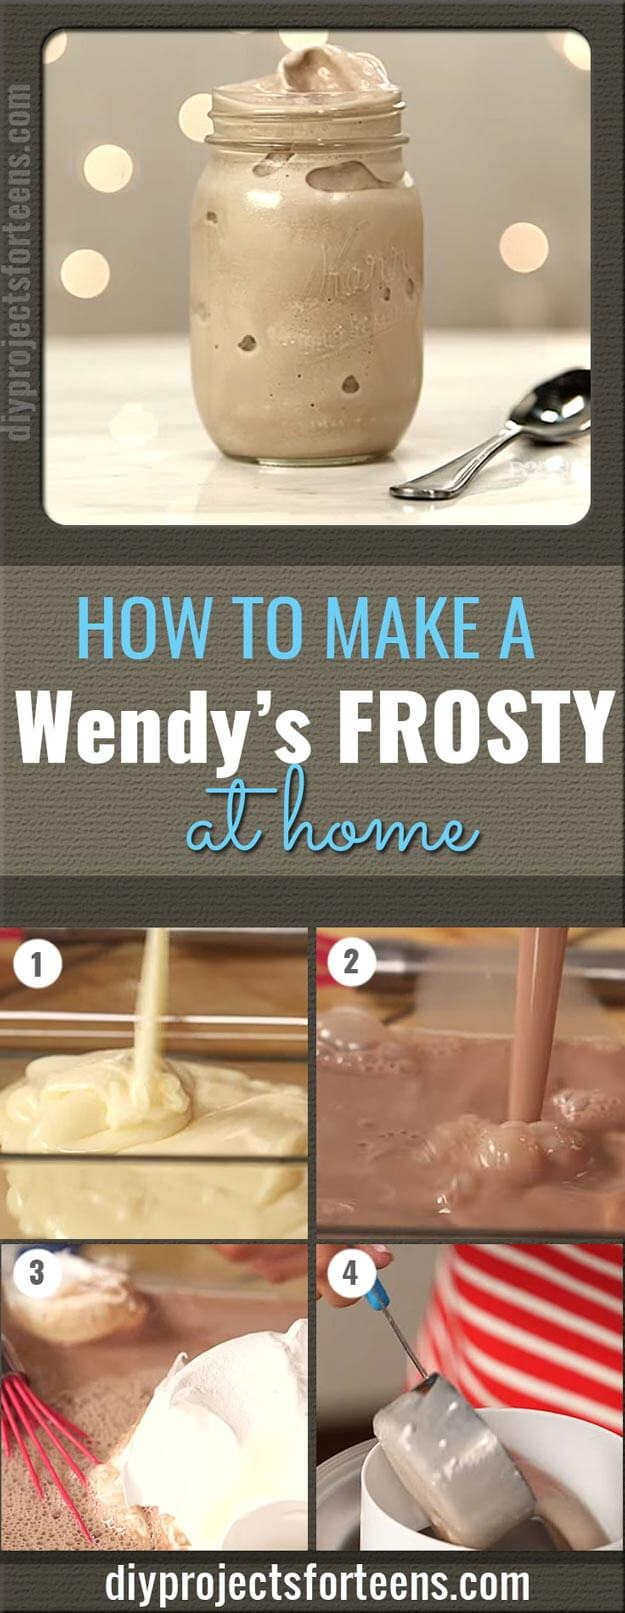 Make A Wendy's Frosty At Home With Only 3 Ingredients